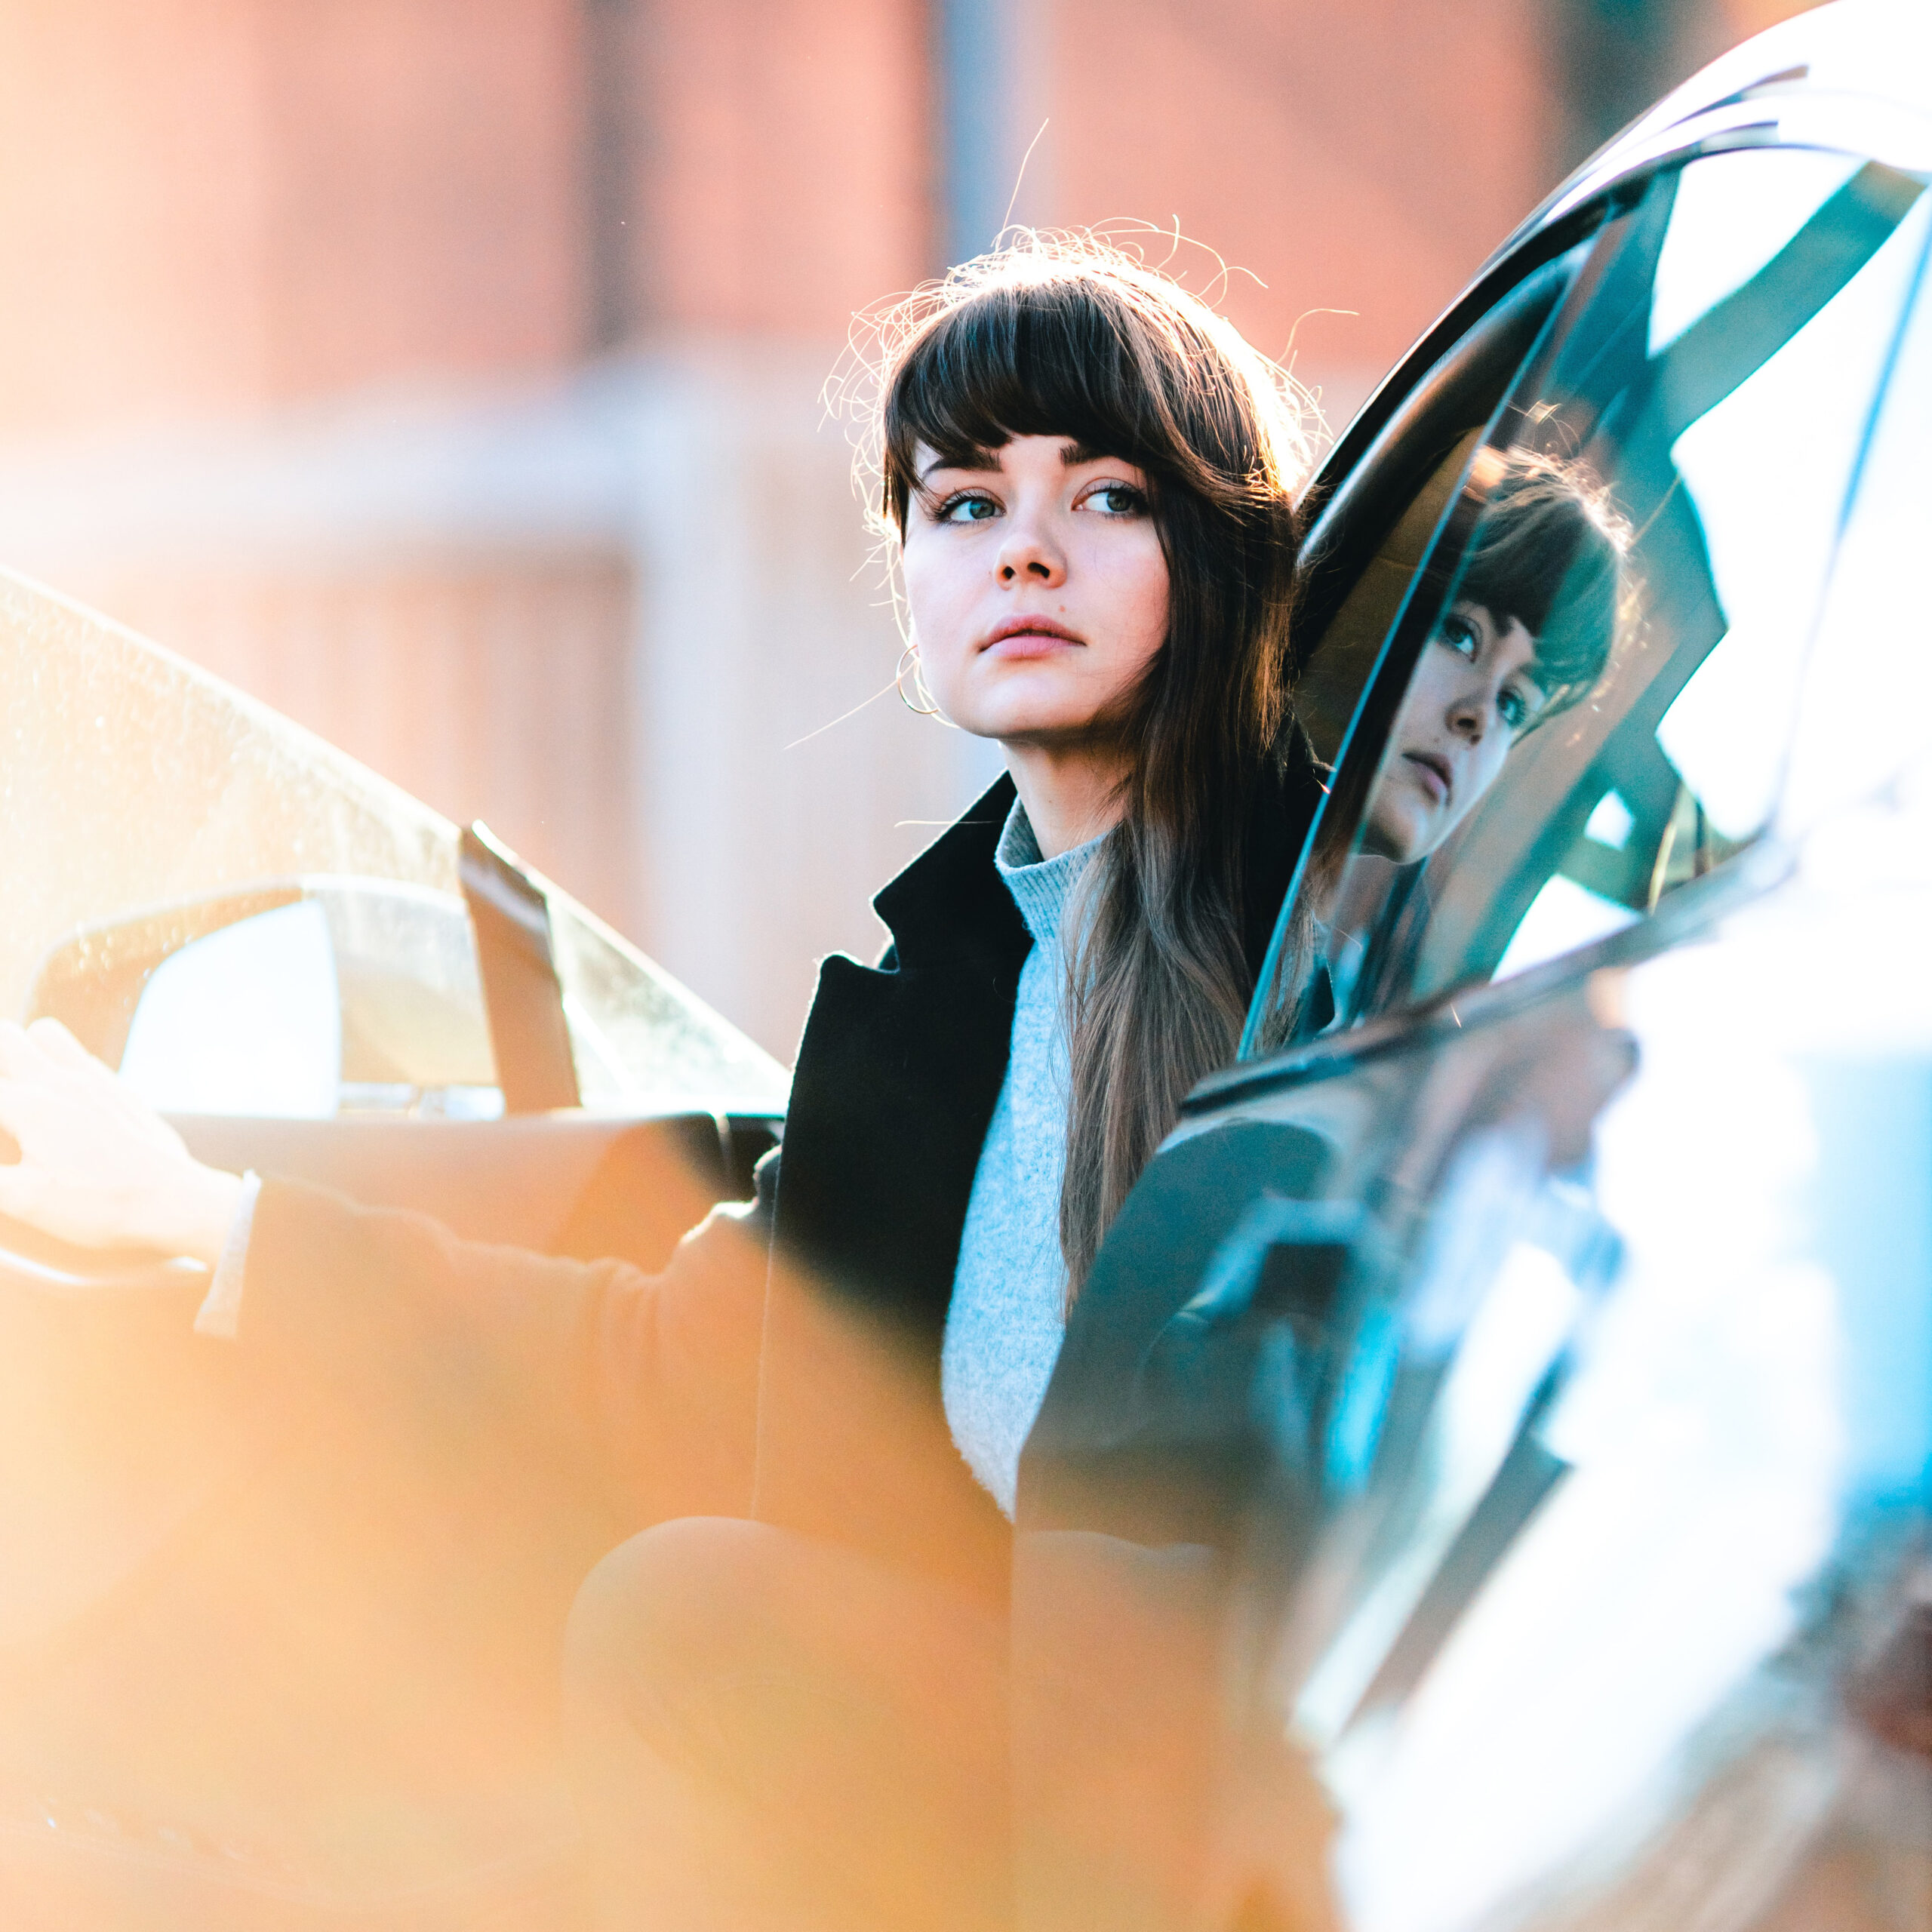 Woman sitting in the open driver side door of a car by Taneli Lahtinen via Unsplash